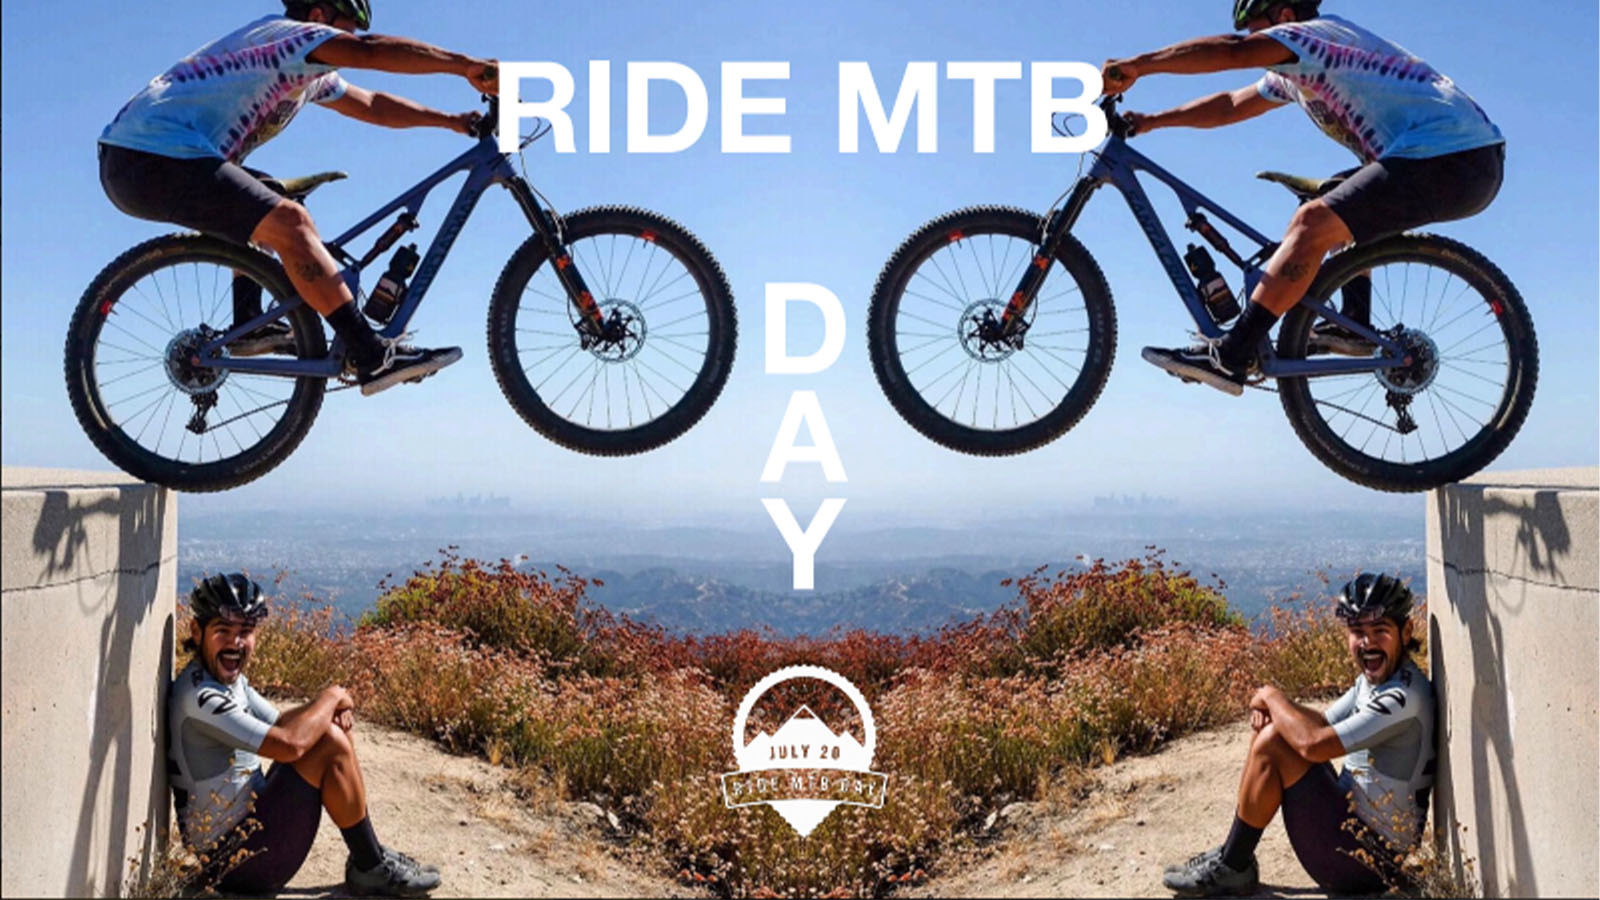 Third Annual Ride MTB Day Recap - Continued Growth and More Bikes!